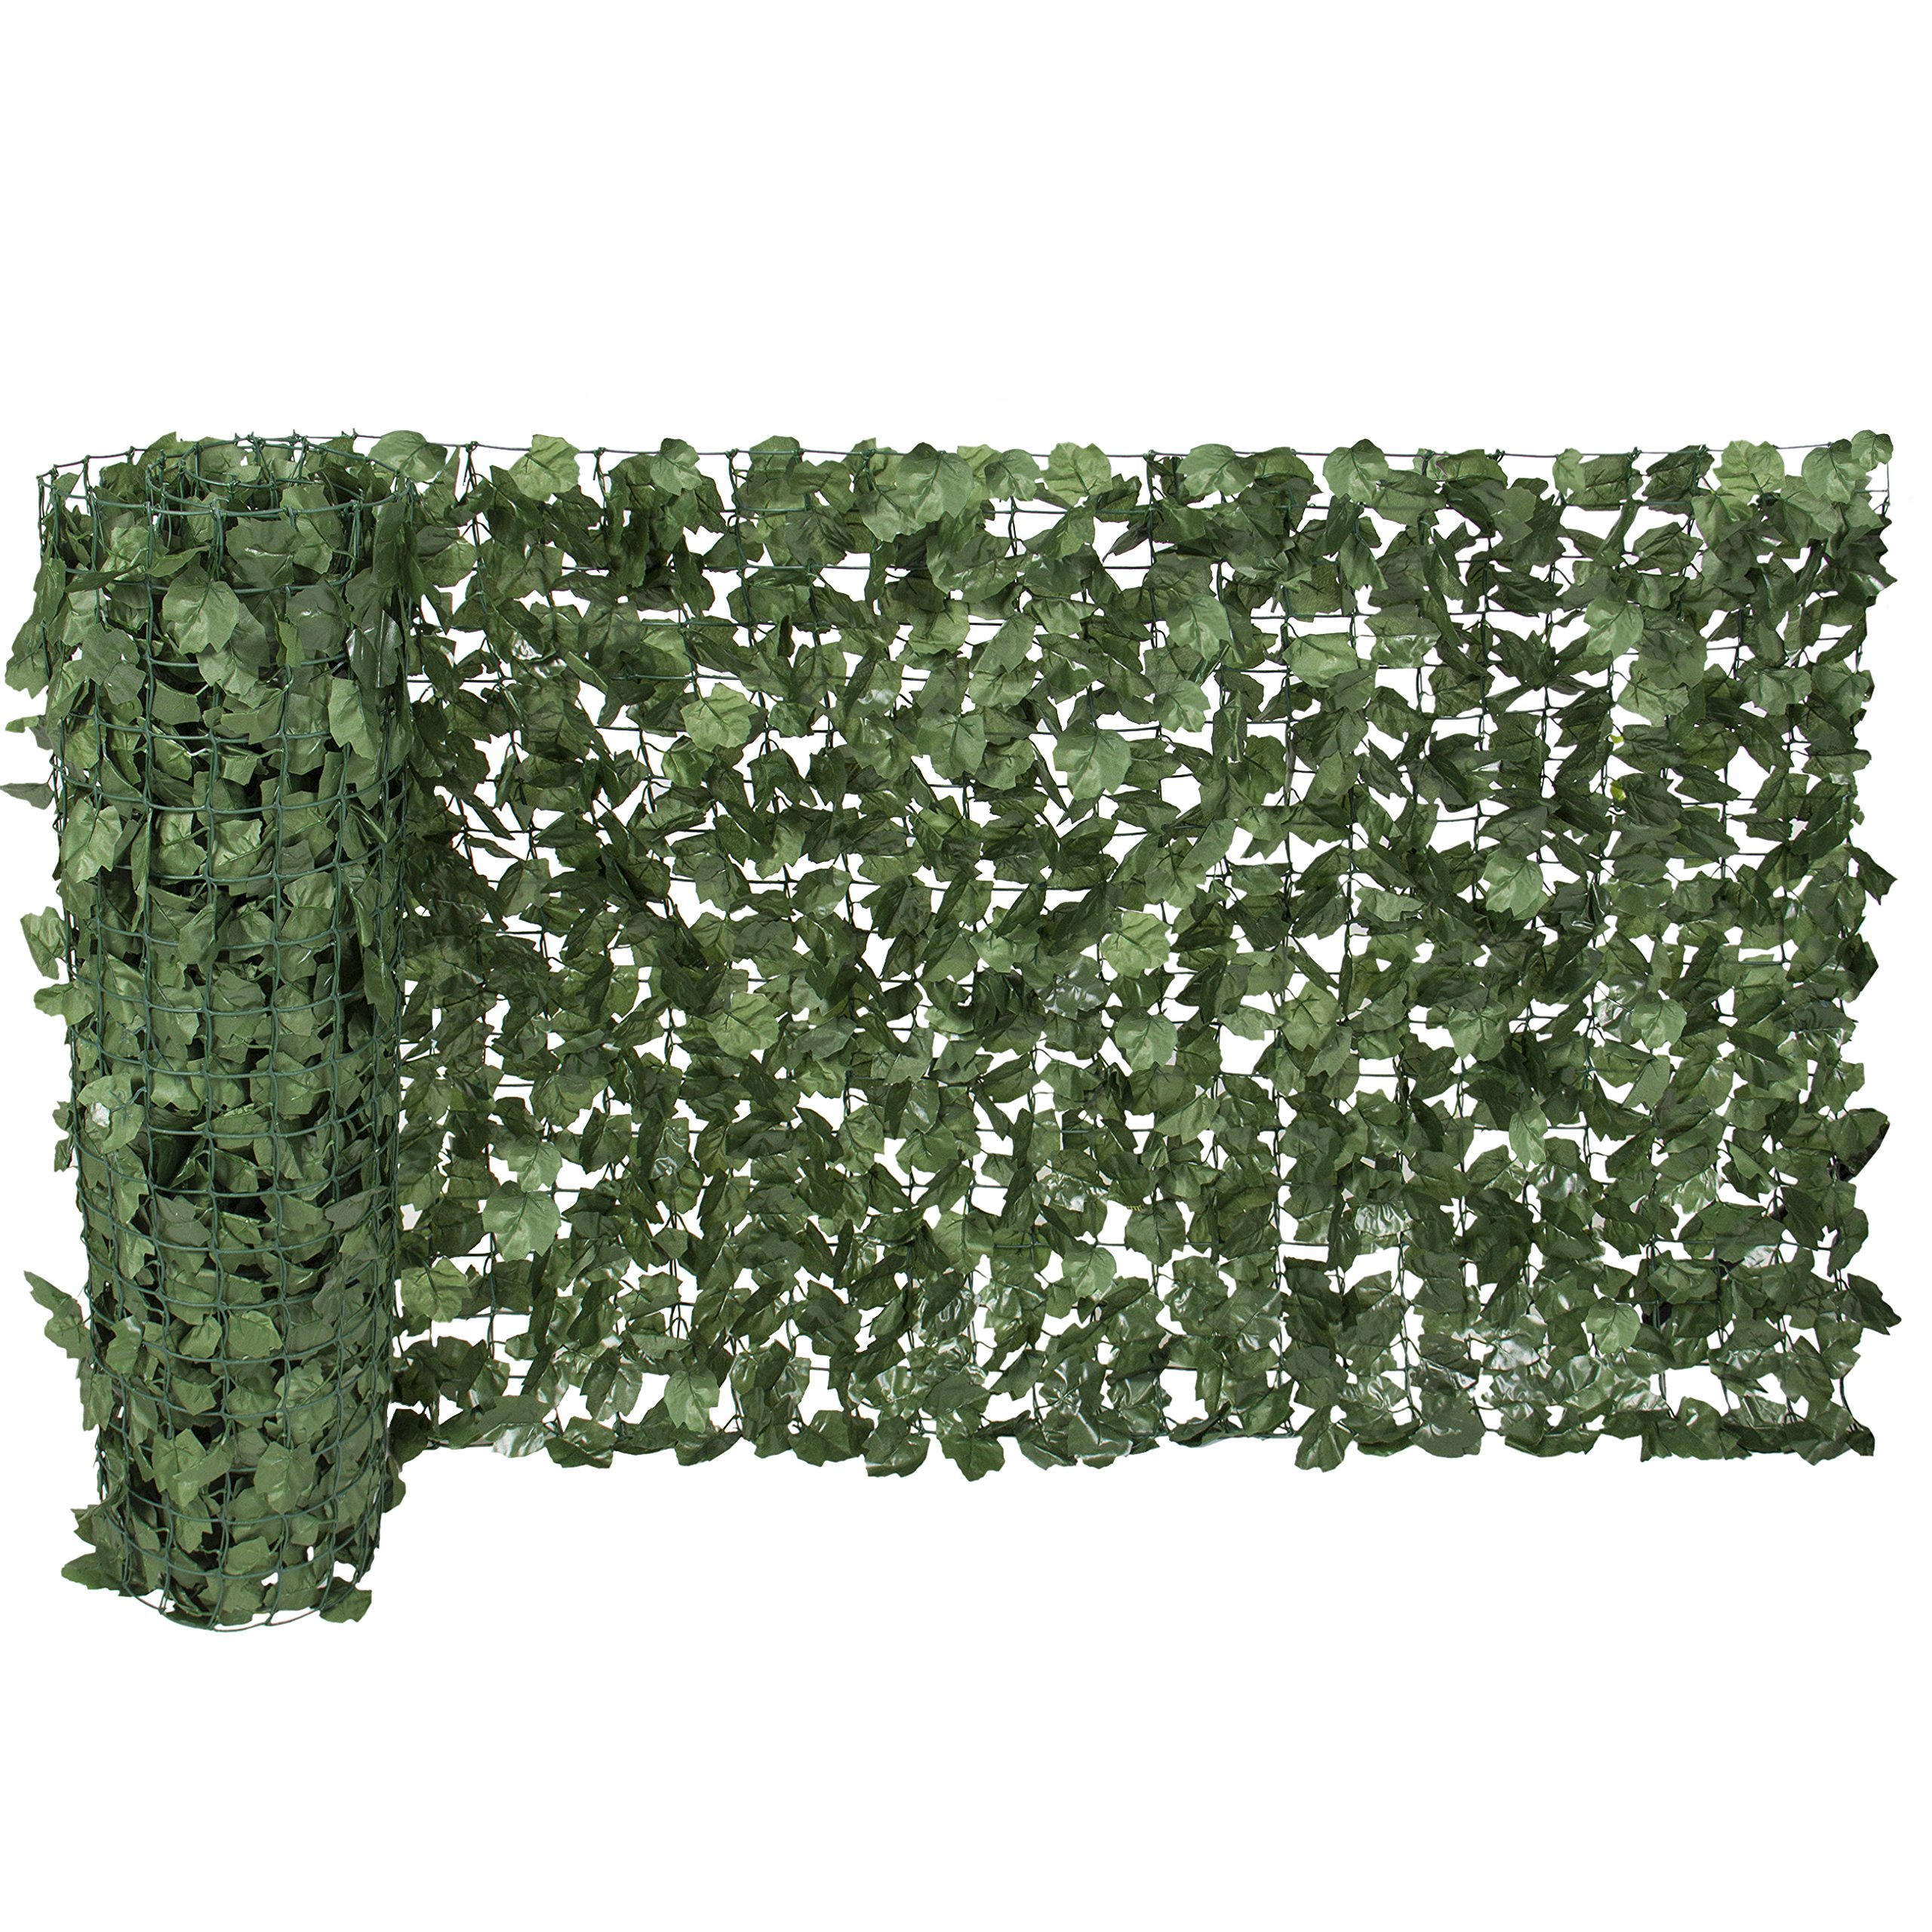 Ecover Artificial Laurel Leave Fence, Wall Decoration, Indoor/Outdoor,39''x118''